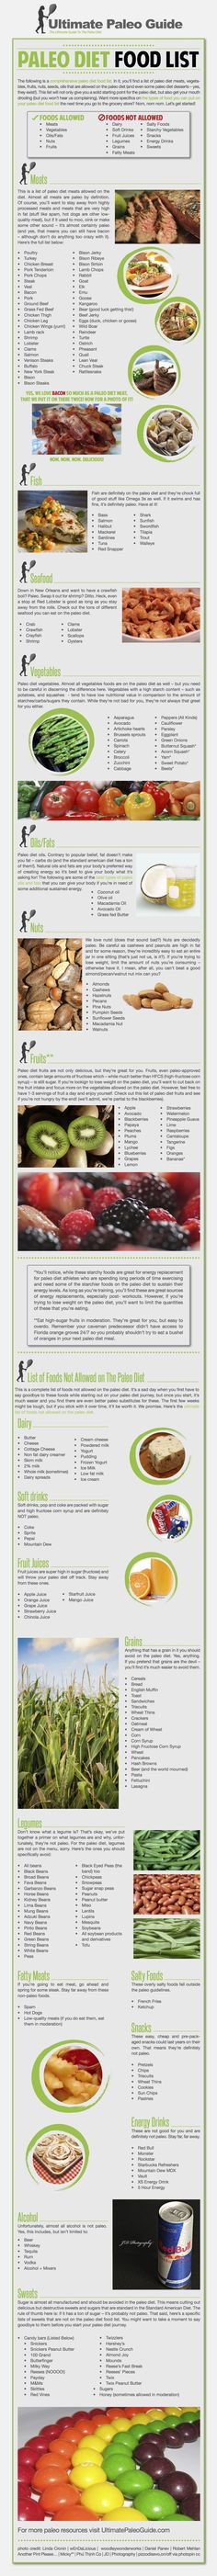 Paleo Diet Food List Infographic @Bryttin Youst Youst Jones-- is this what you were telling me about?